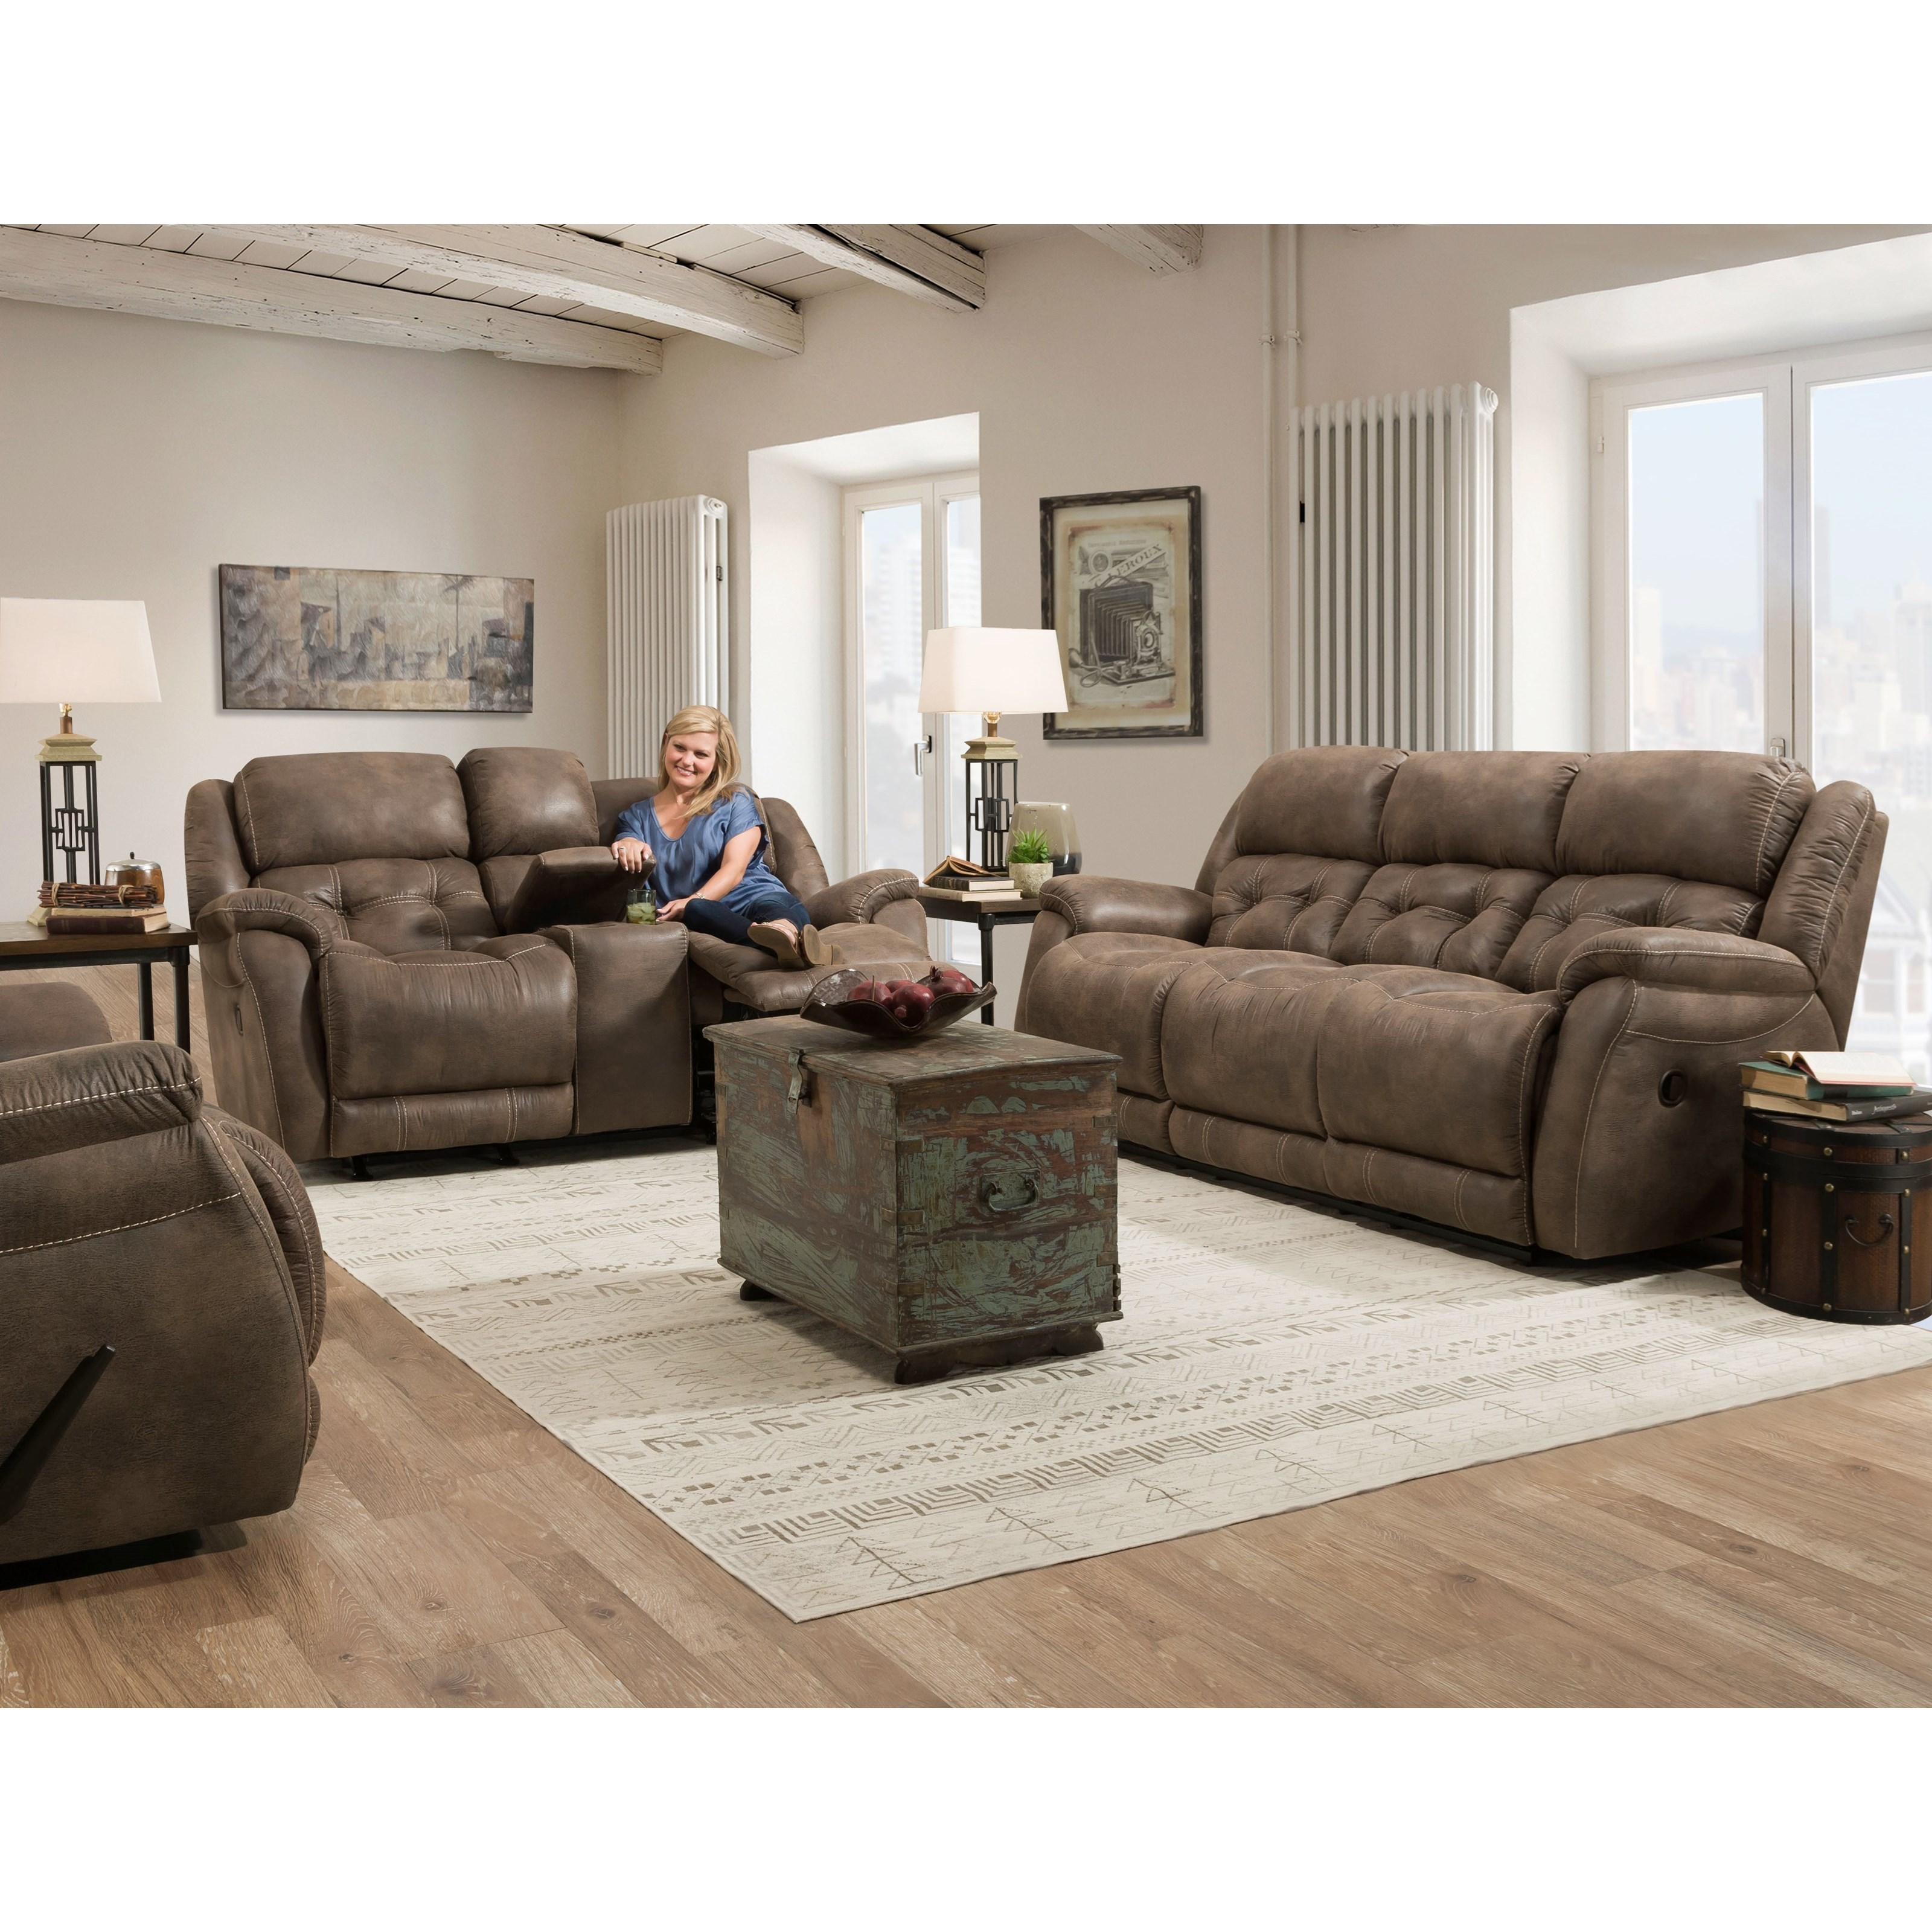 McLean Reclining Living Room Group by HomeStretch at Gill Brothers Furniture